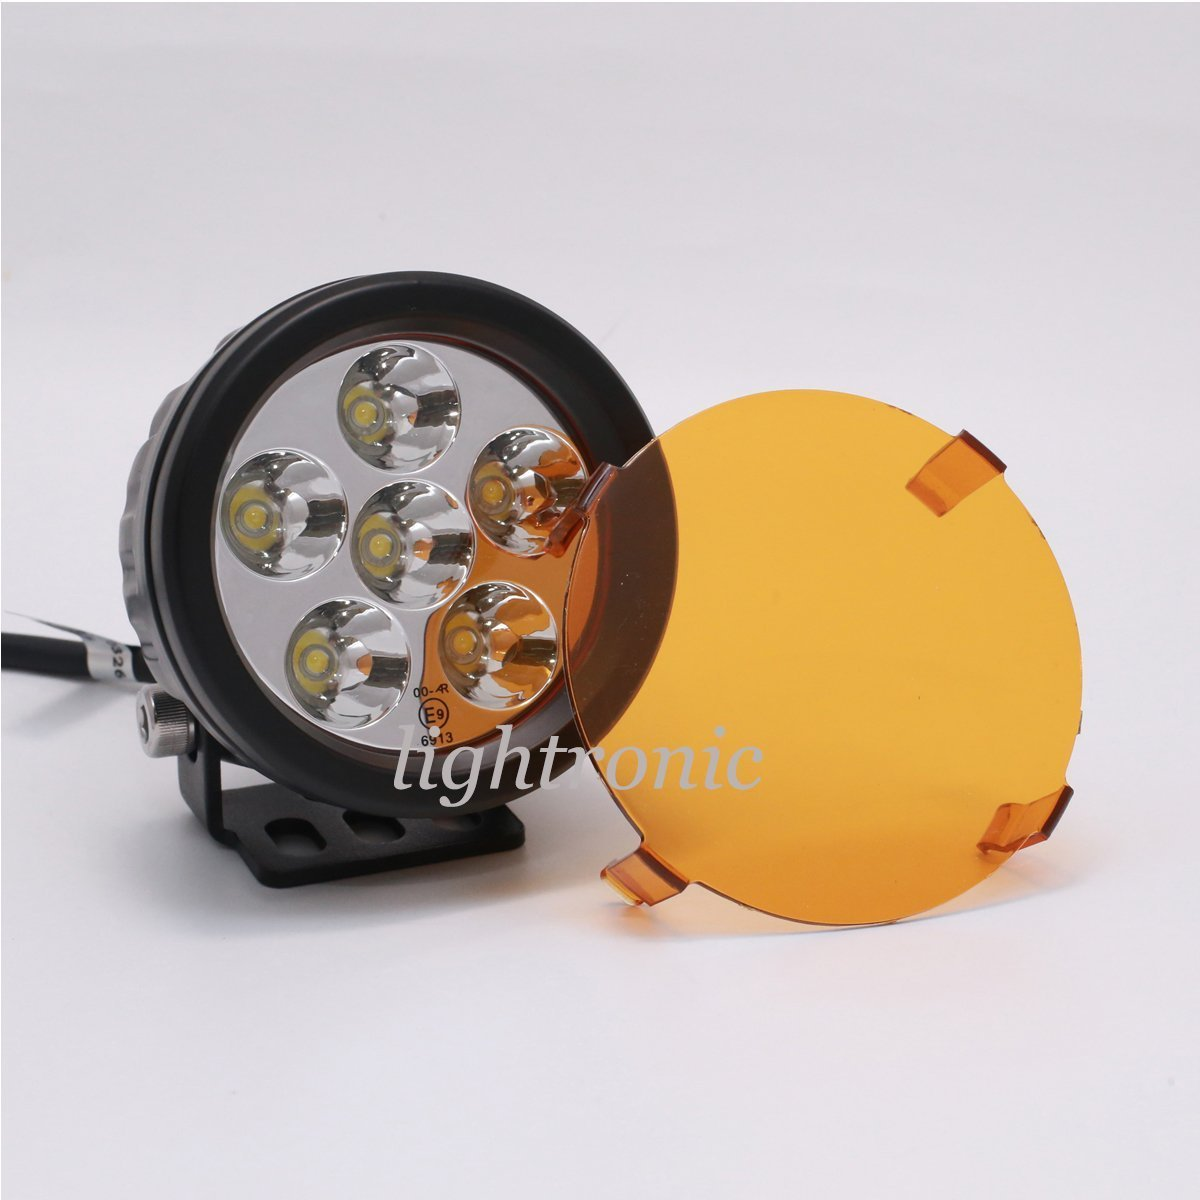 lightronic 2PCS 3.5 INCH 18W Round Compact Size LED Off-Road Driving Pod Work Rear Fog Lights